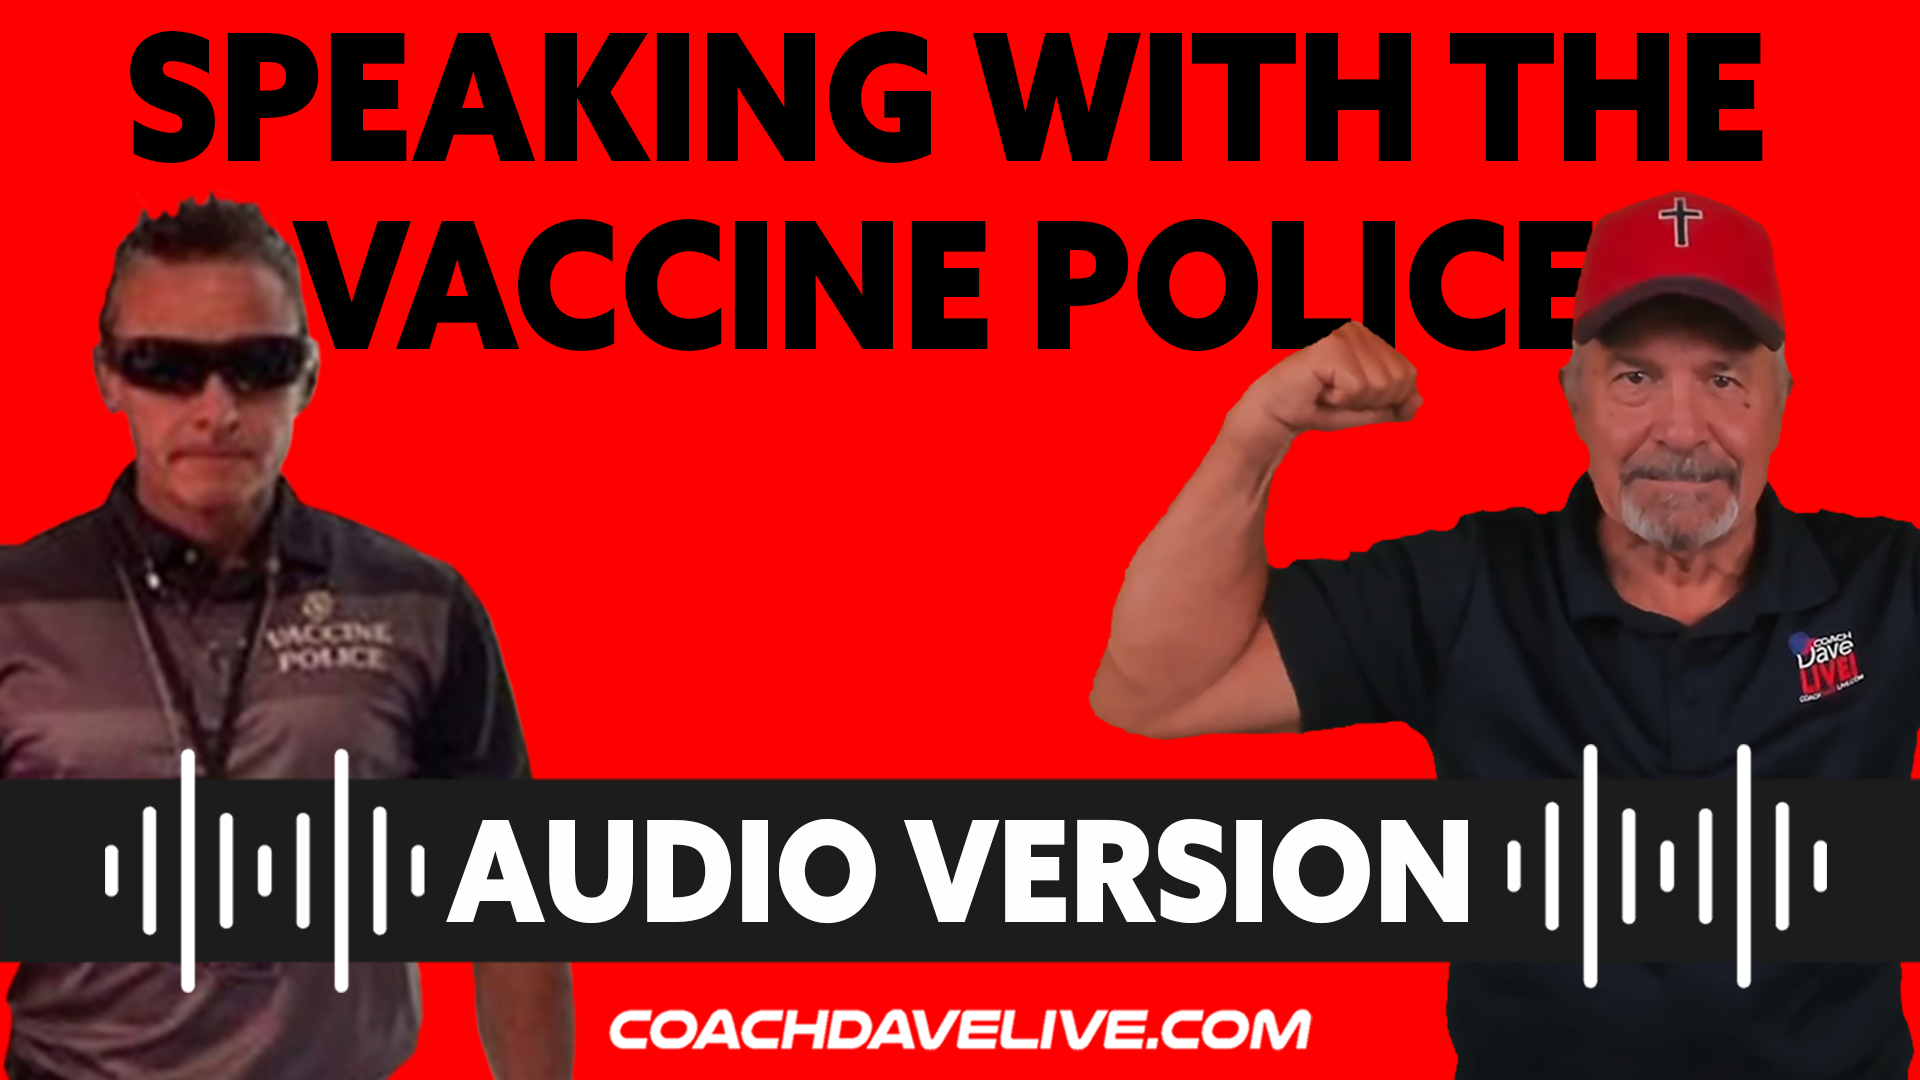 Coach Dave LIVE | 8-26-2021 | SPEAKING WITH THE VACCINE POLICE! - AUDIO ONLY